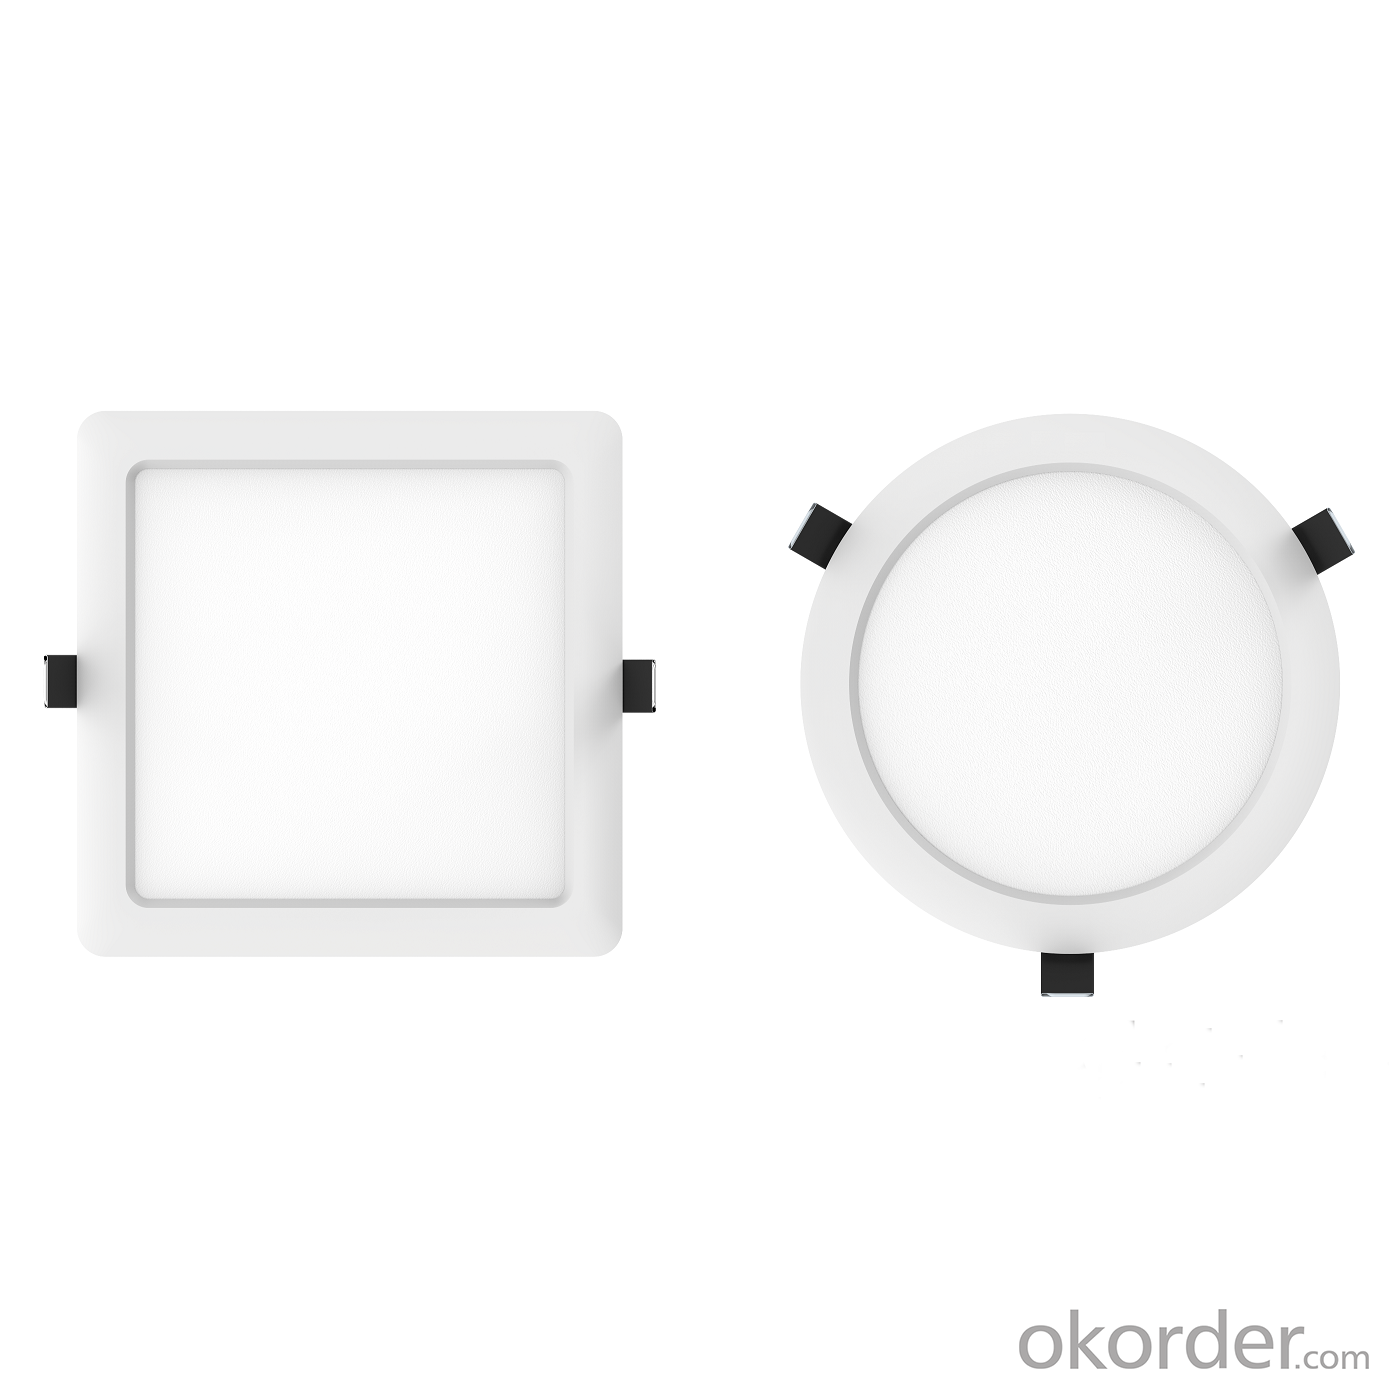 Slim and stylish design LED Downlight for Retail, home and office use